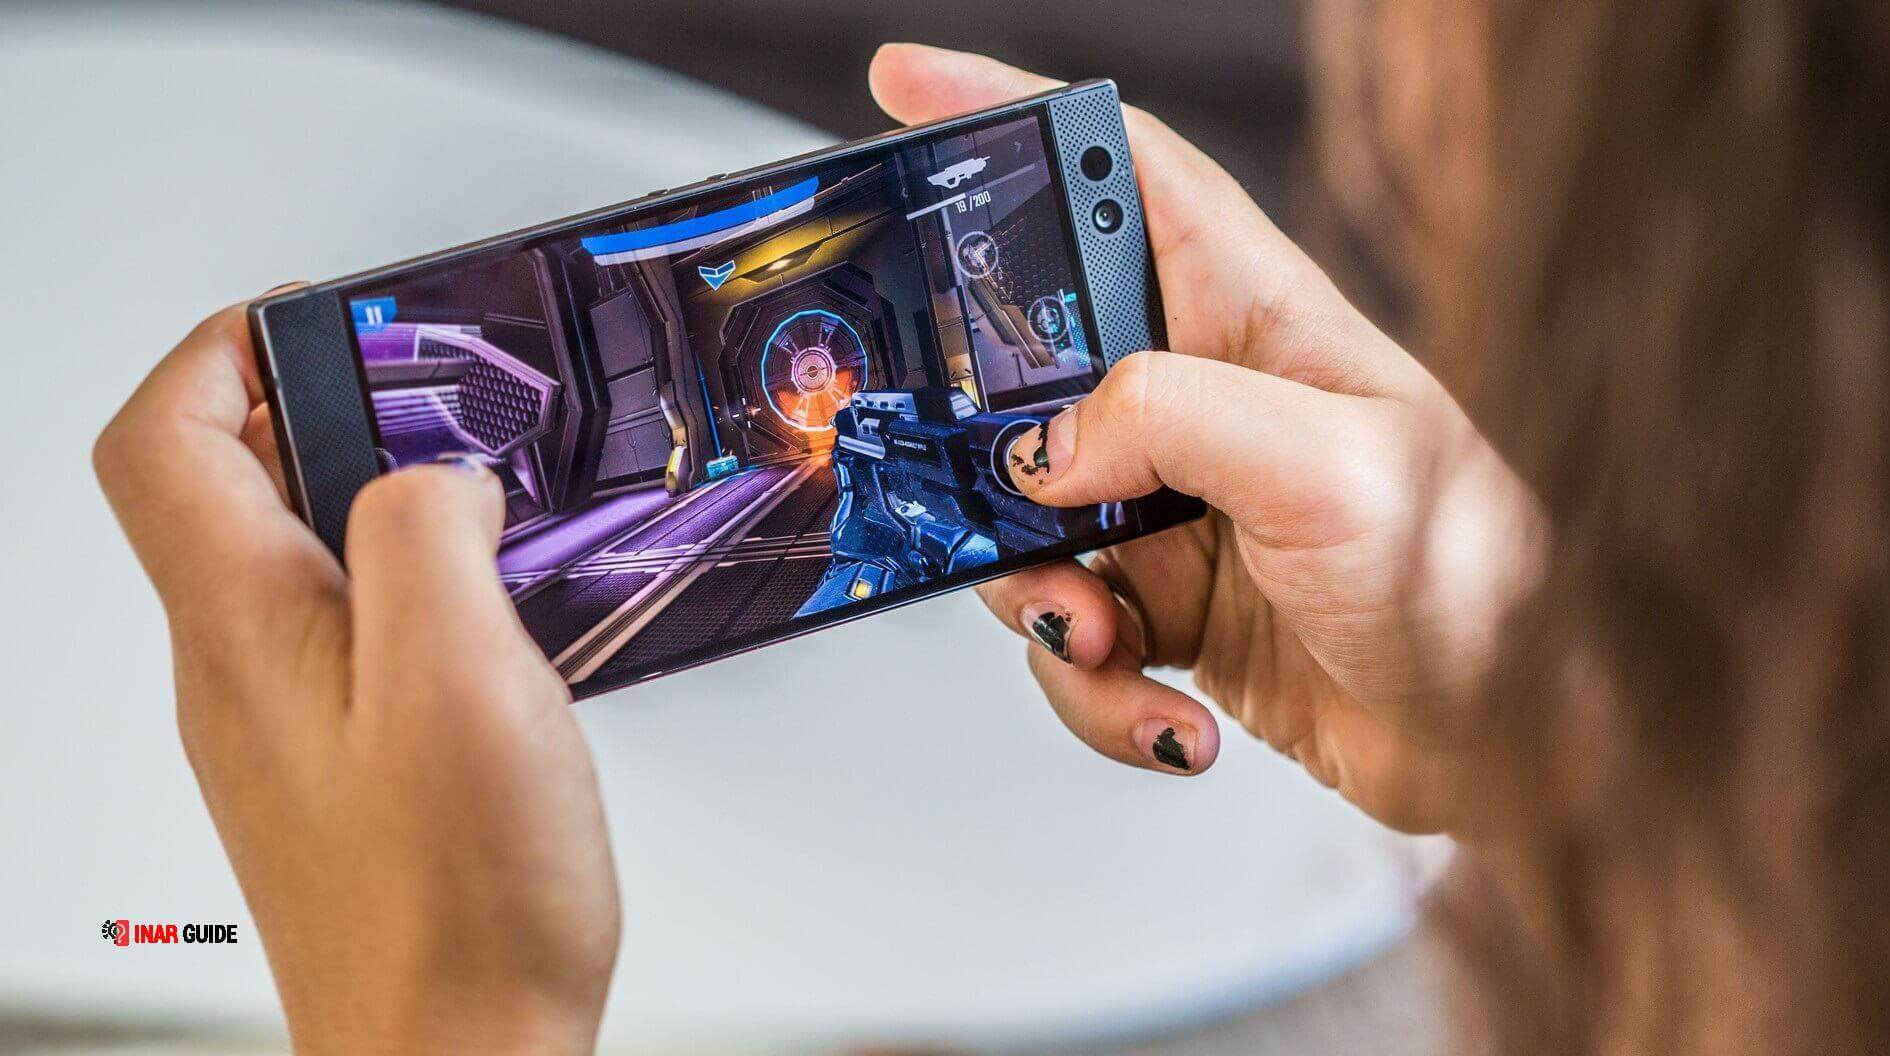 The Best Android Games for Smartphones The Best 51 Android Games